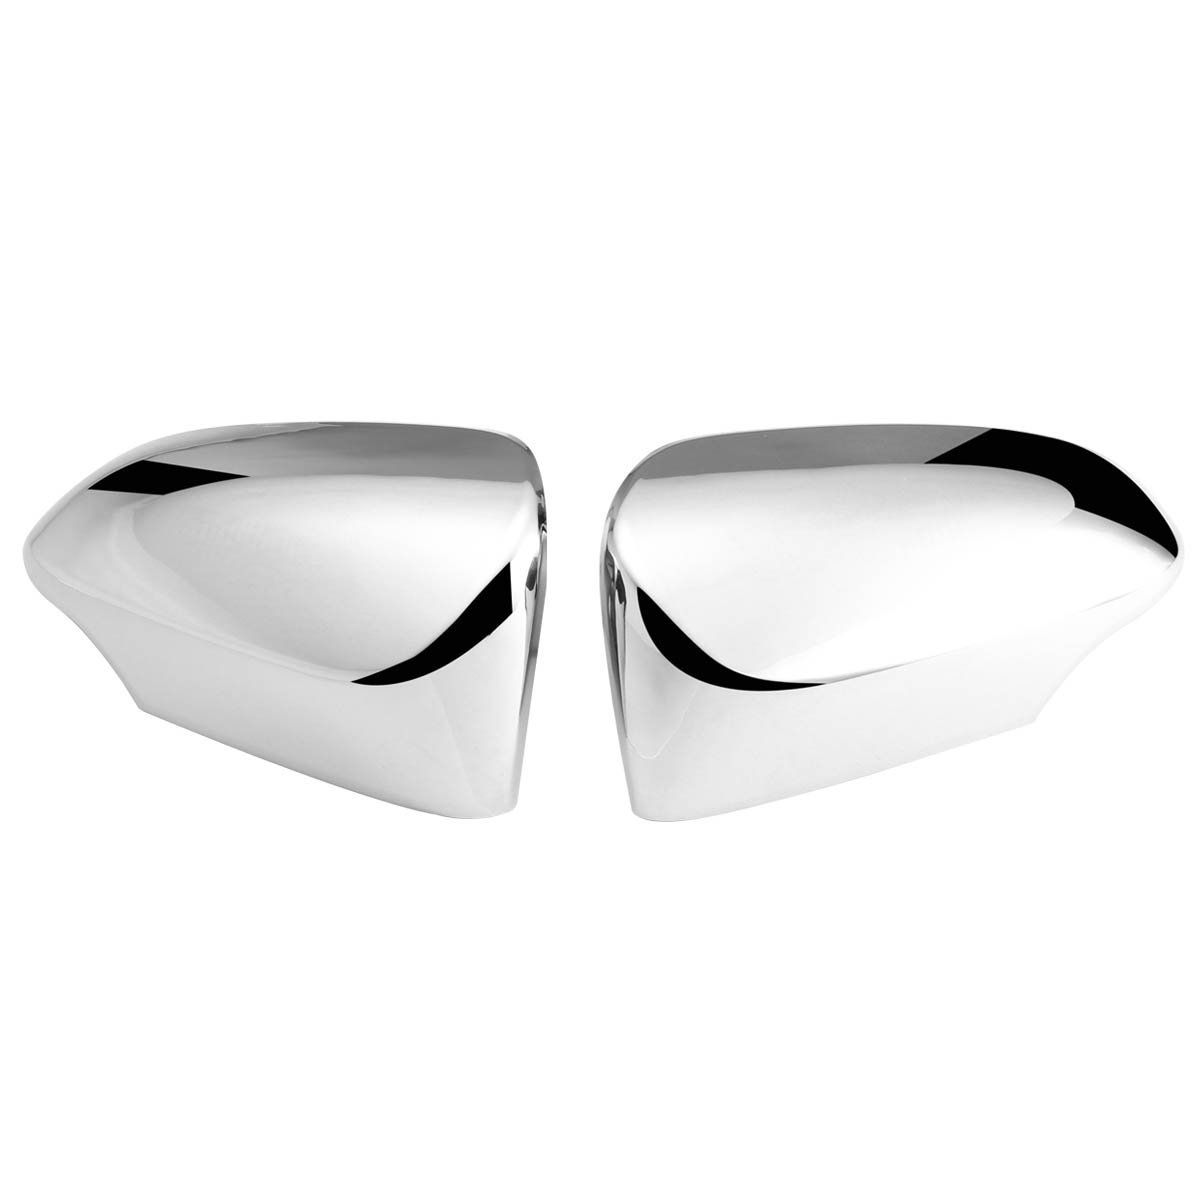 SIDE MIRROR COVERS FOR TATA INDICA VISTA (SET OF 2PCS)